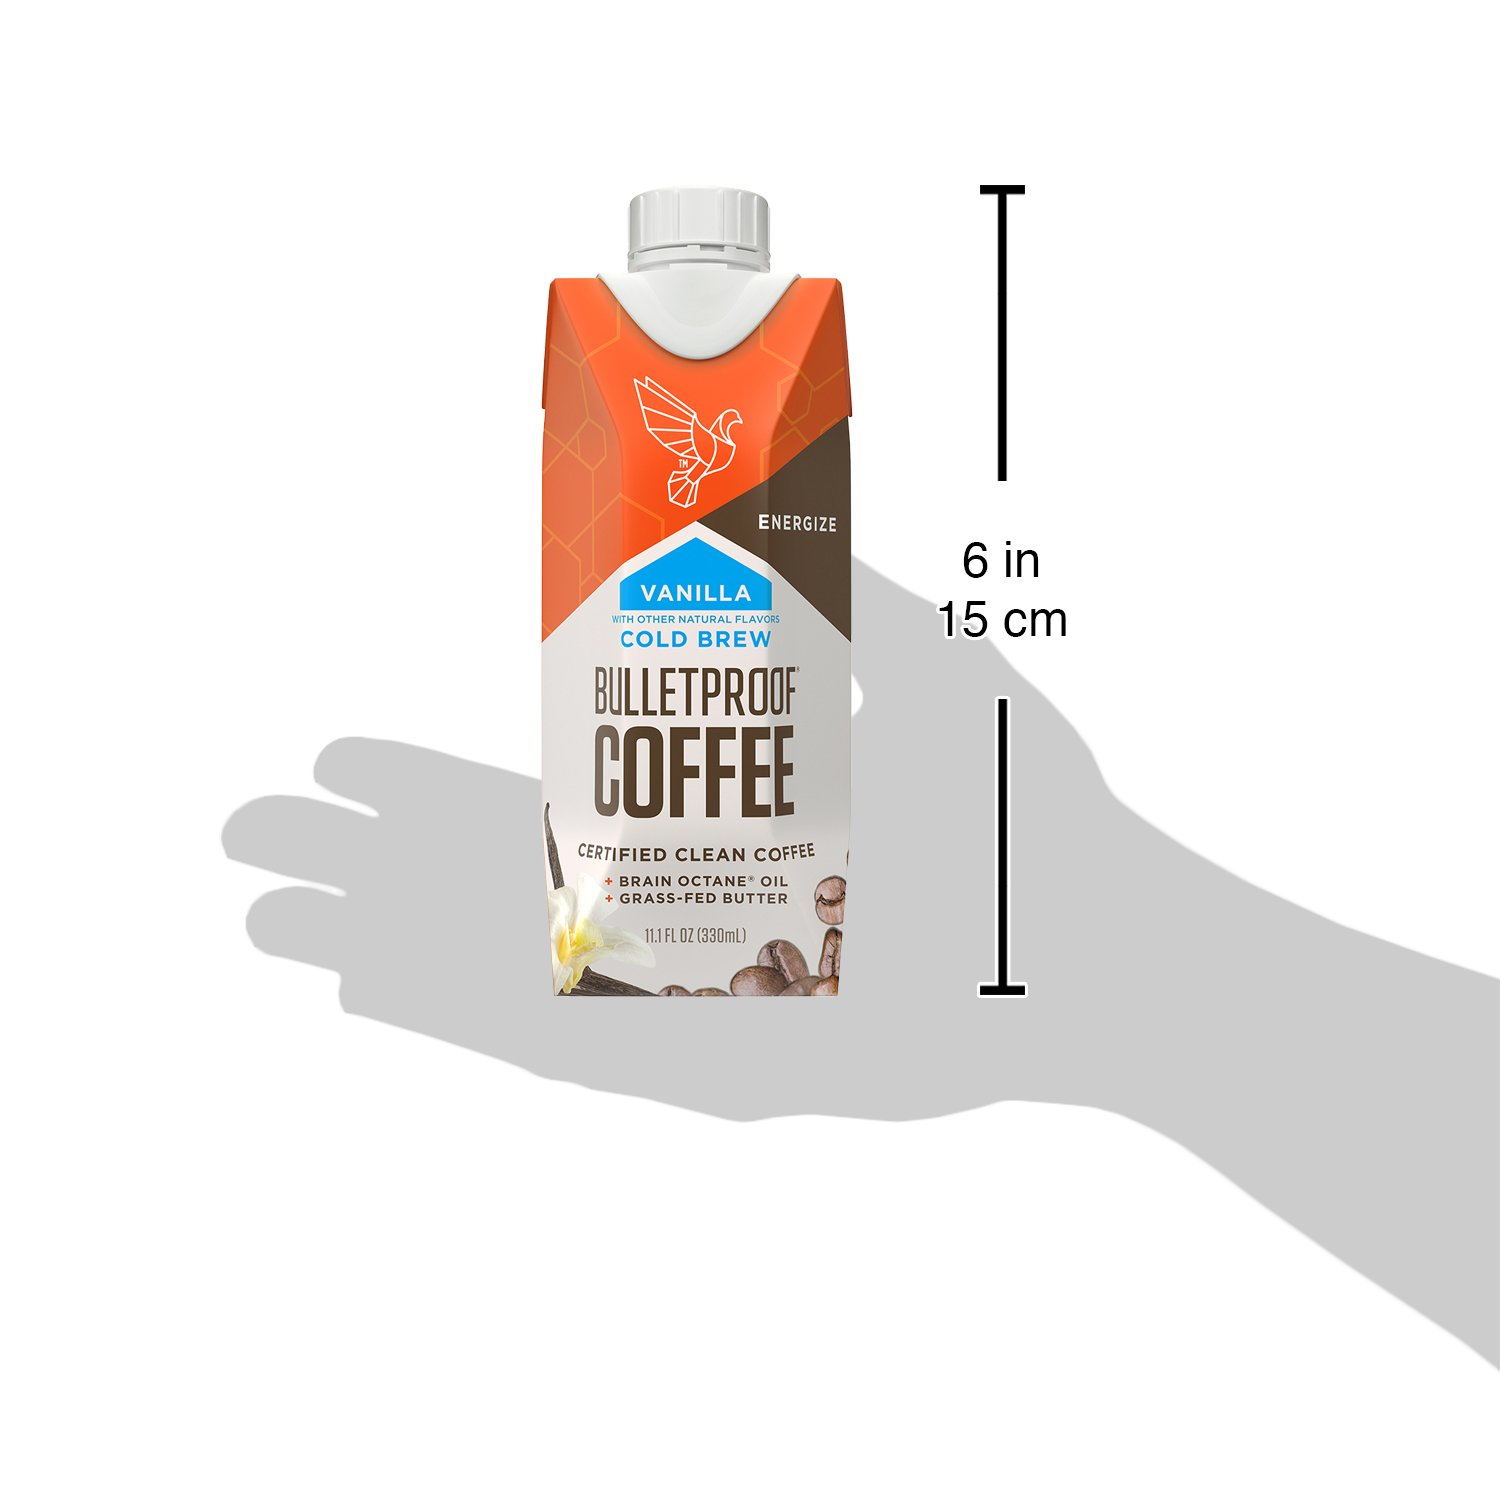 Bulletproof Coffee Cold Brew Ready To Drink- Ketogentic Diet, Sugar-Free, Includes Grass-Fed Butter and Brain Octane Oil, Vanilla (12 Pack) by Bulletproof (Image #4)